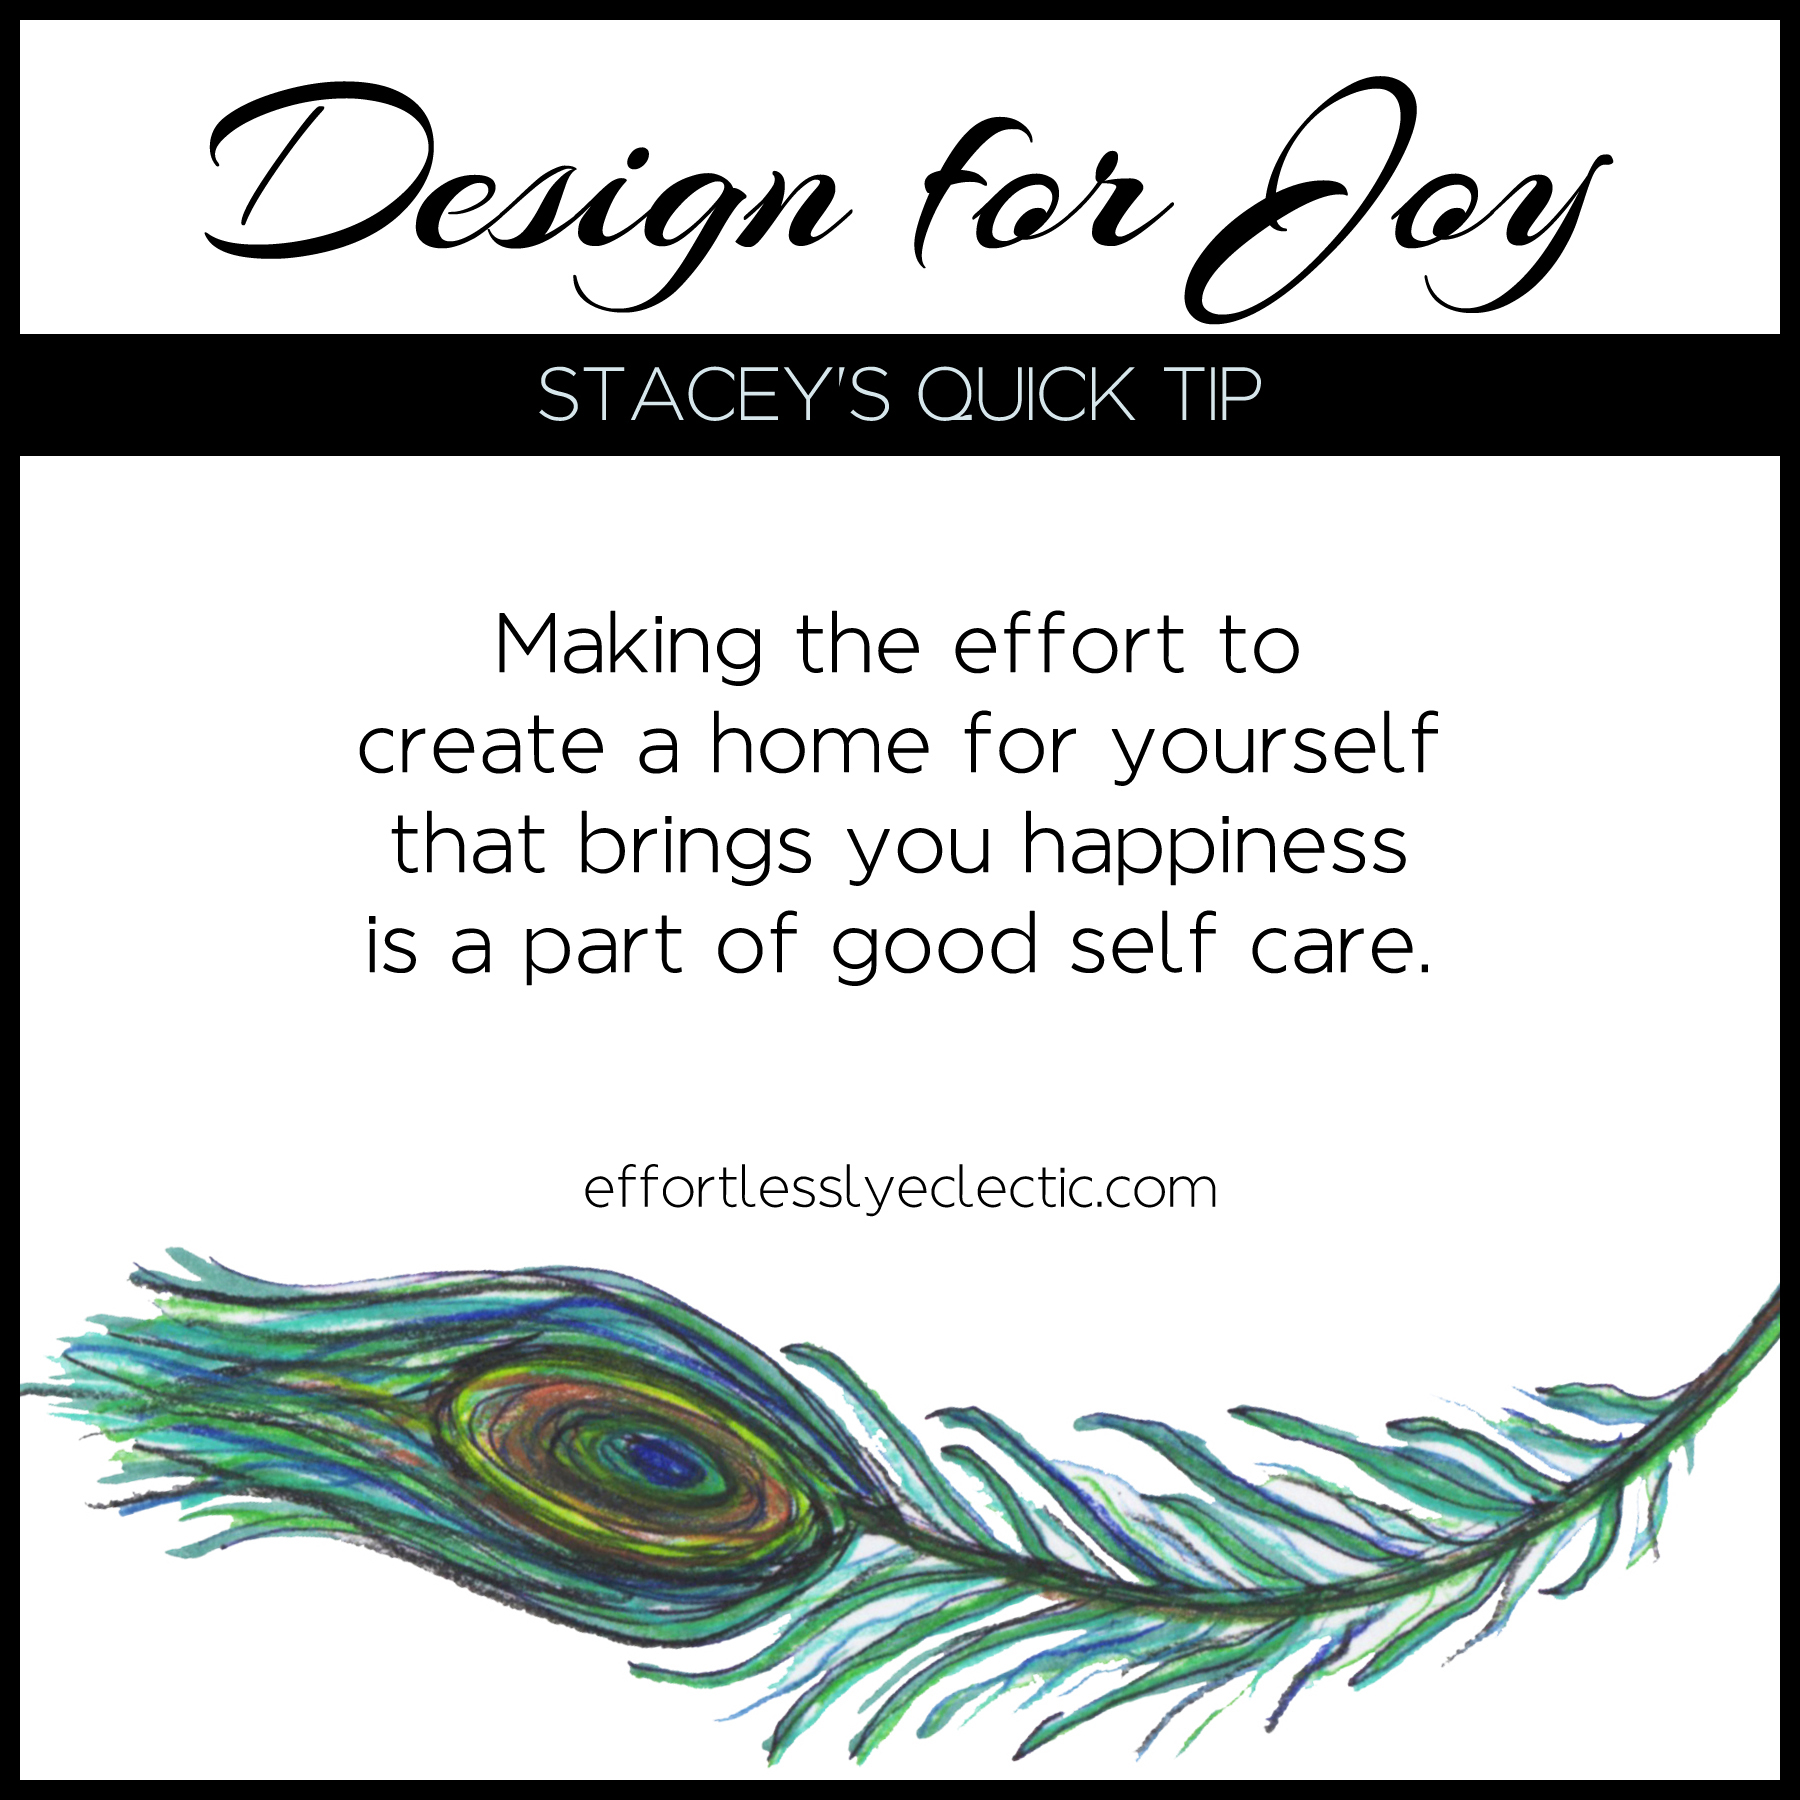 Design for Joy - A home decorating tip about the importance of a joyful home